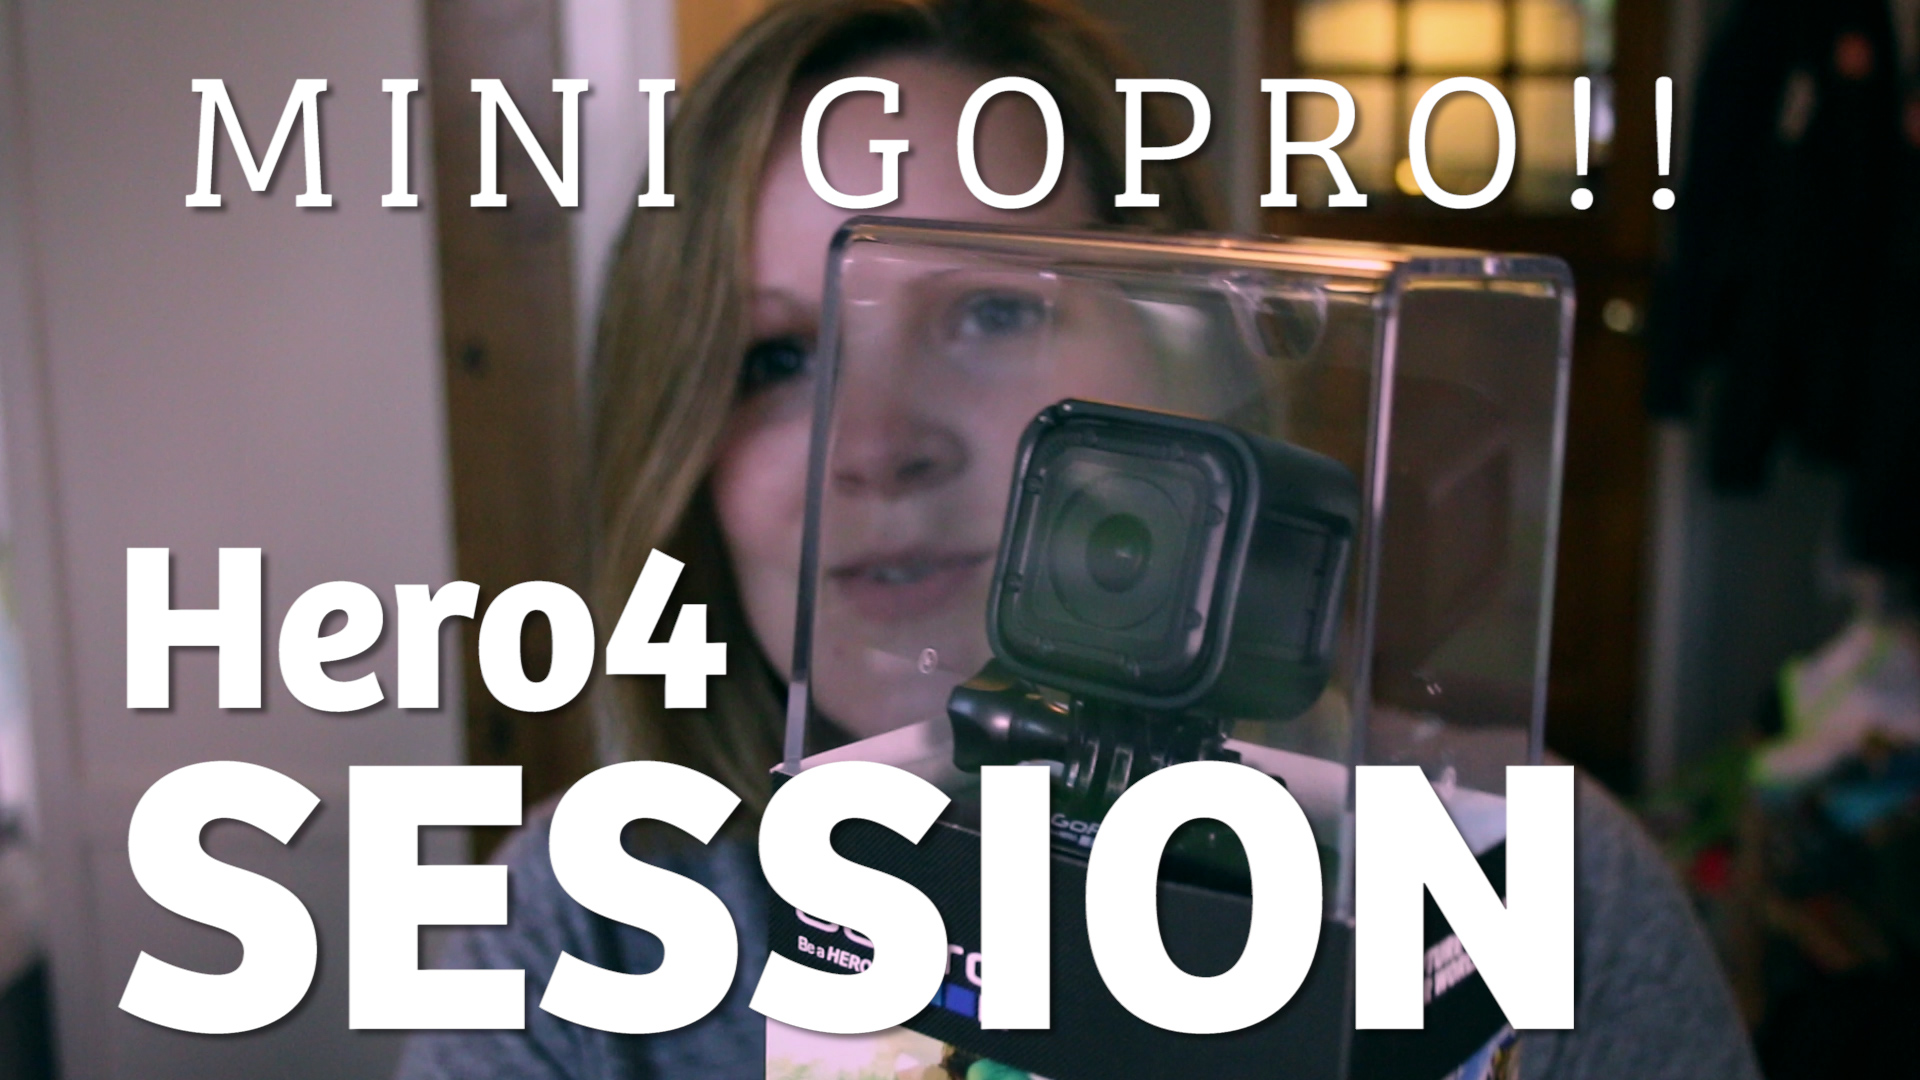 GoPro Hero4 Session - It's like a Mini GoPro!